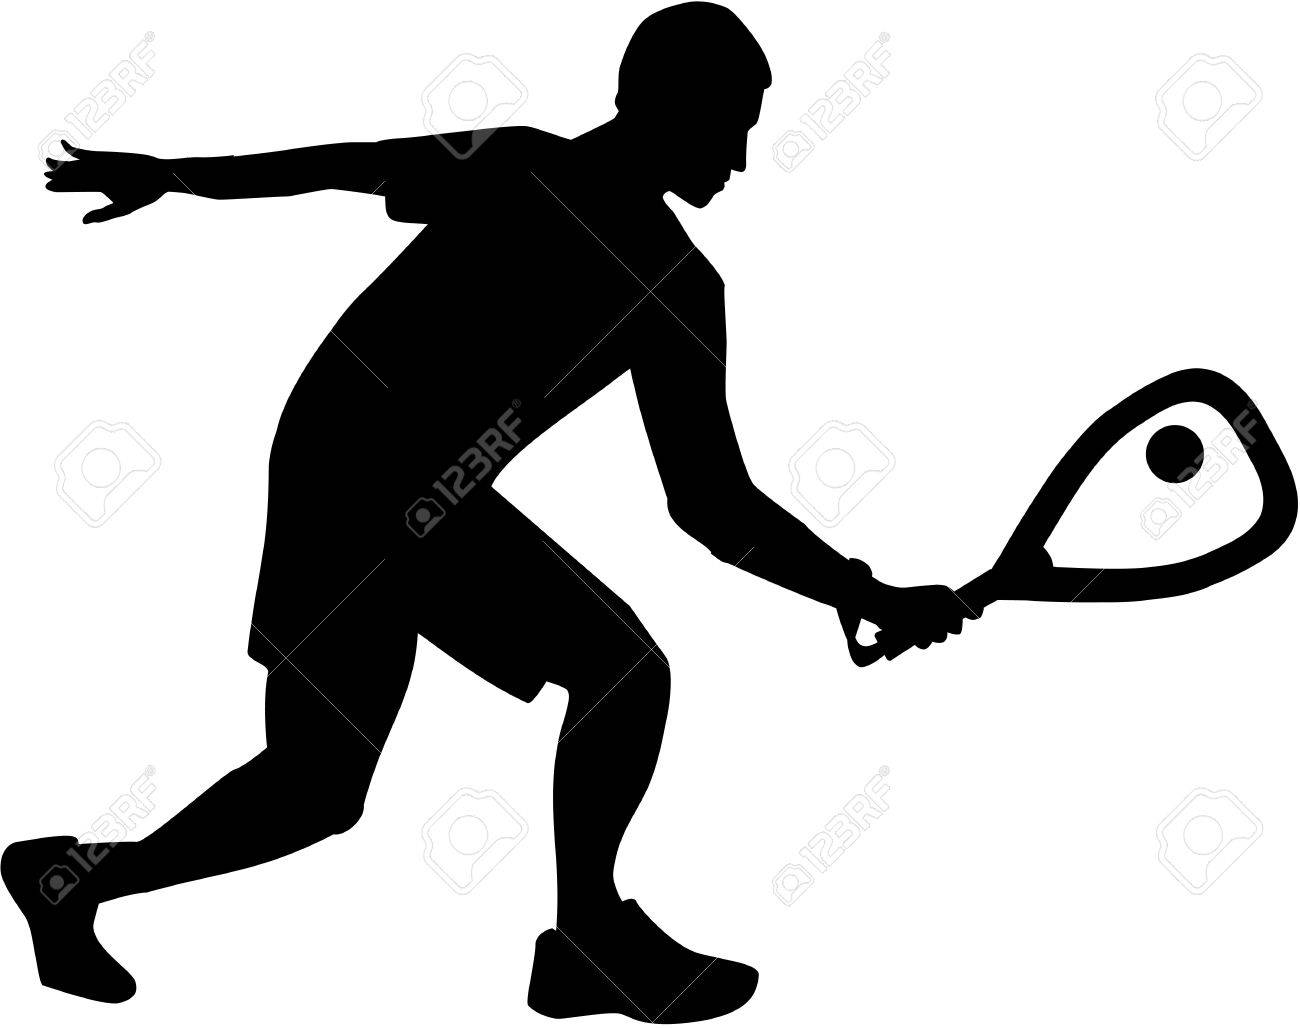 racquetball silhouette royalty free cliparts vectors and stock